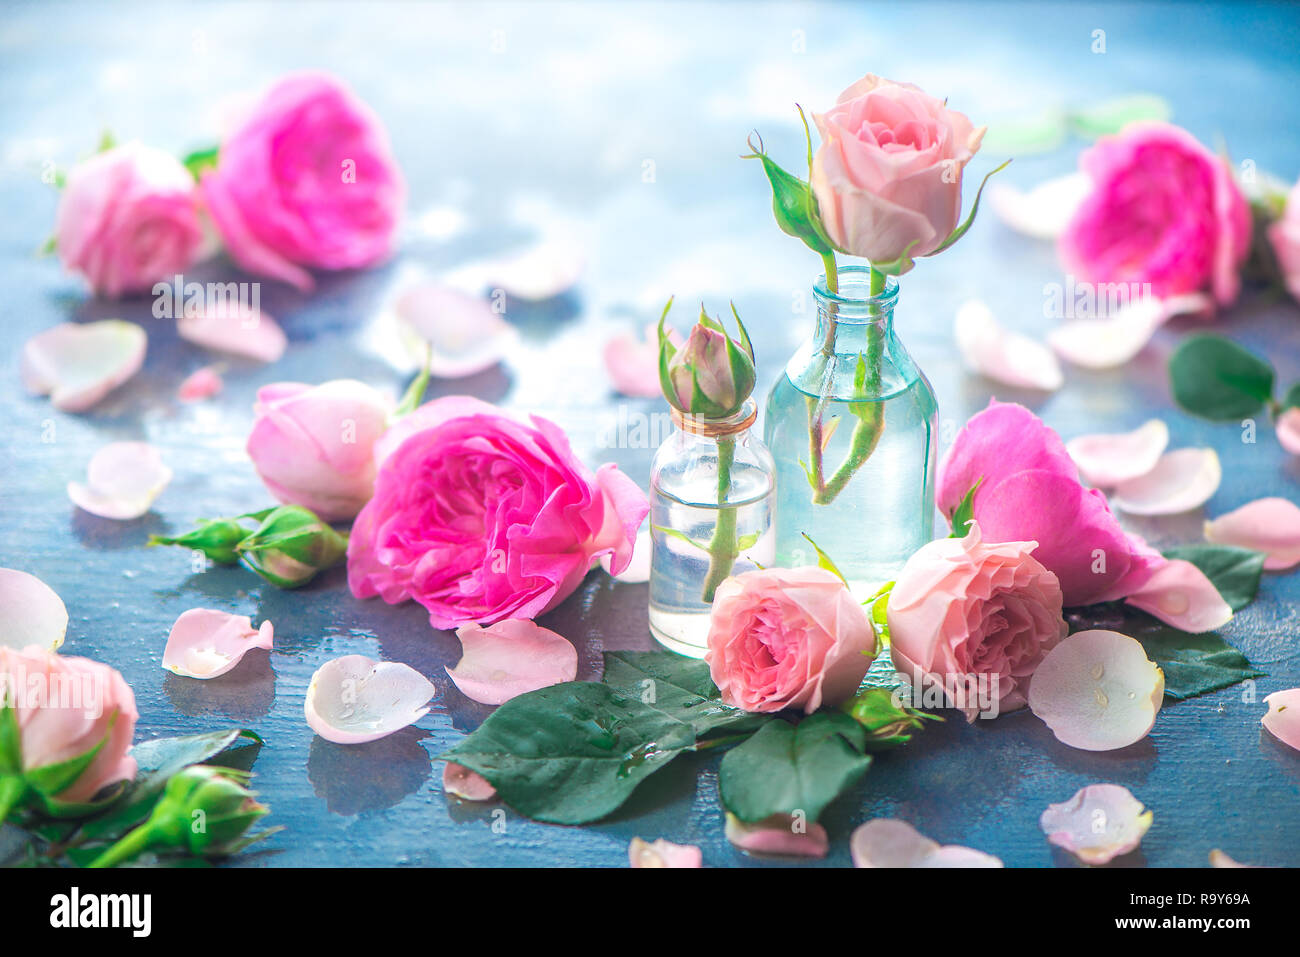 Pink peony roses, petals, and leaves on a wet rainy background in the morning light. Spring header with copy space Stock Photo